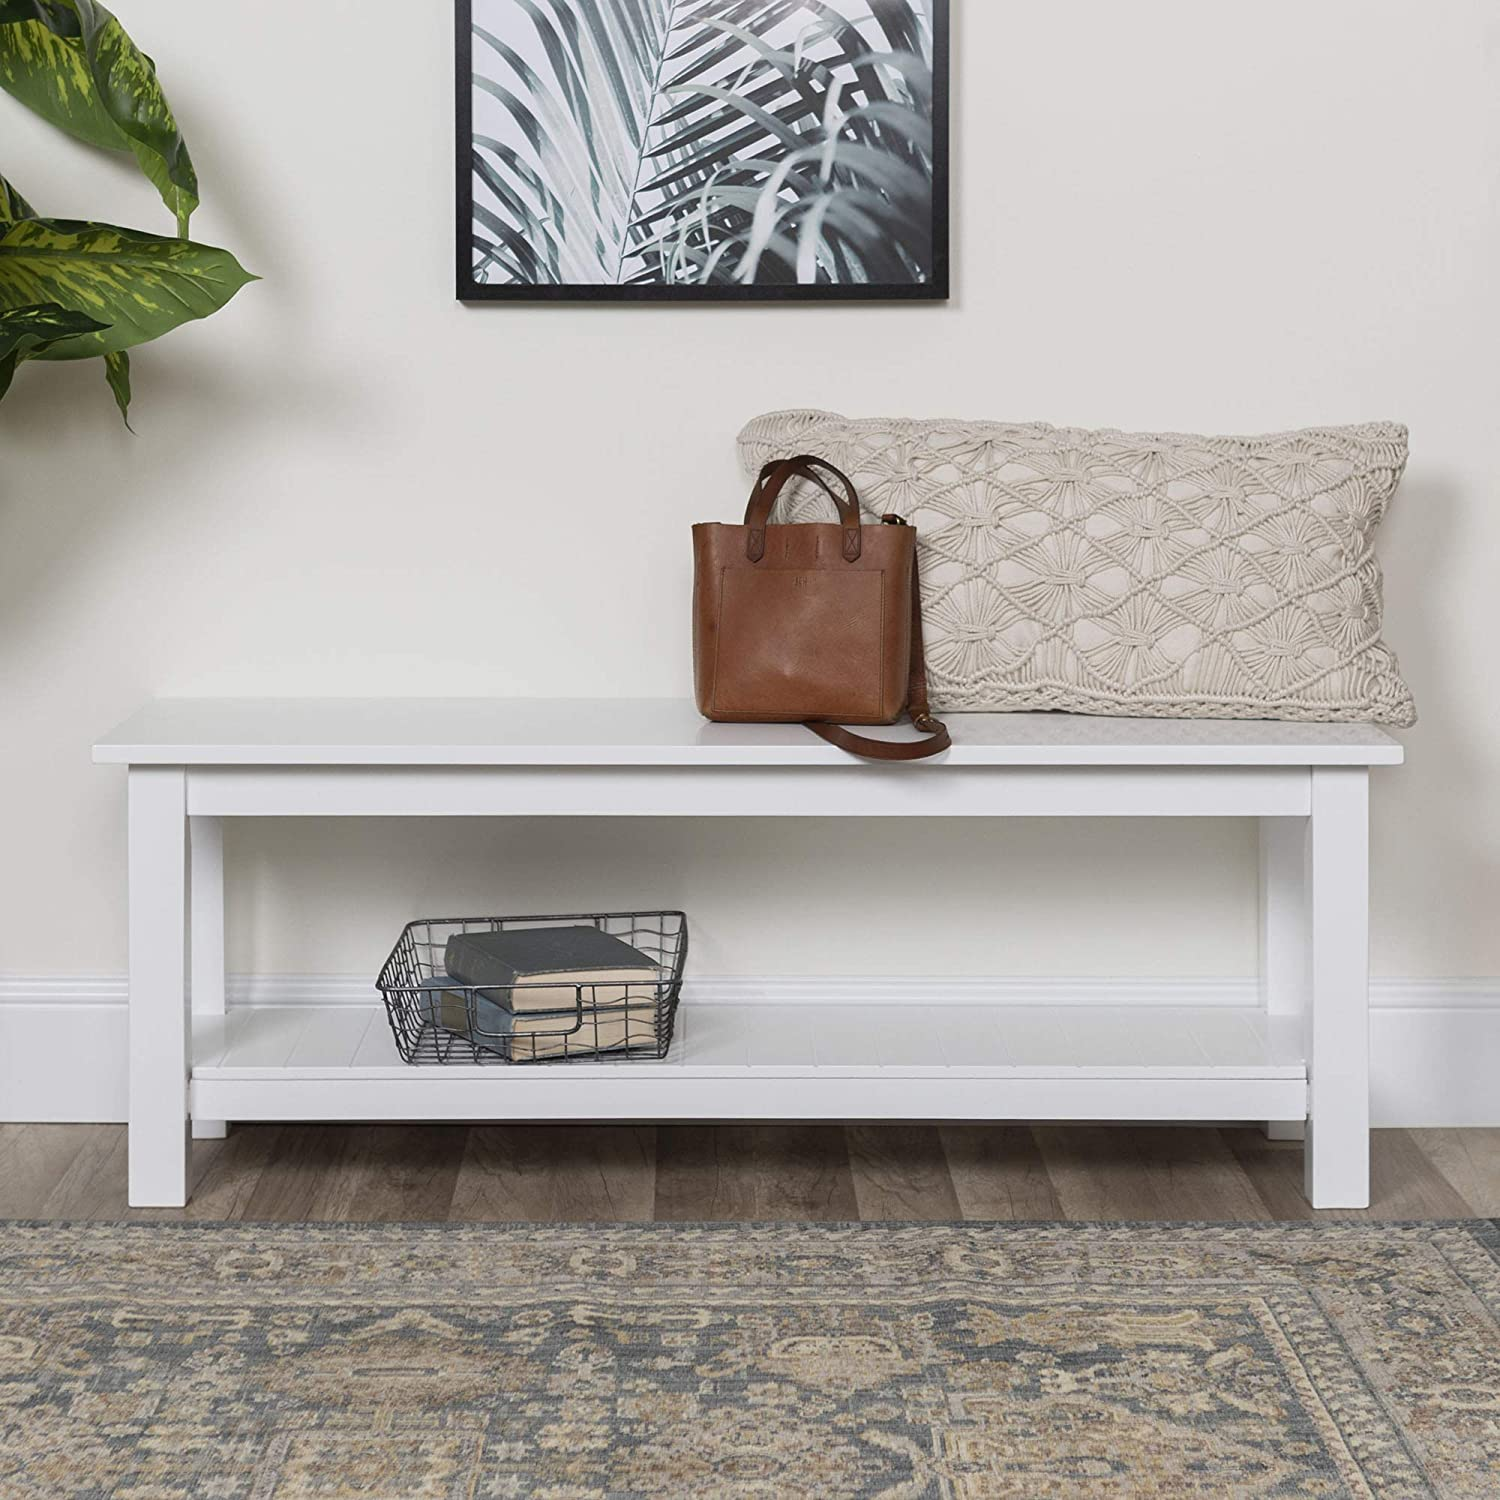 WE Furniture Farmhouse Wood Entryway Dining Bench, 50 Inch, White